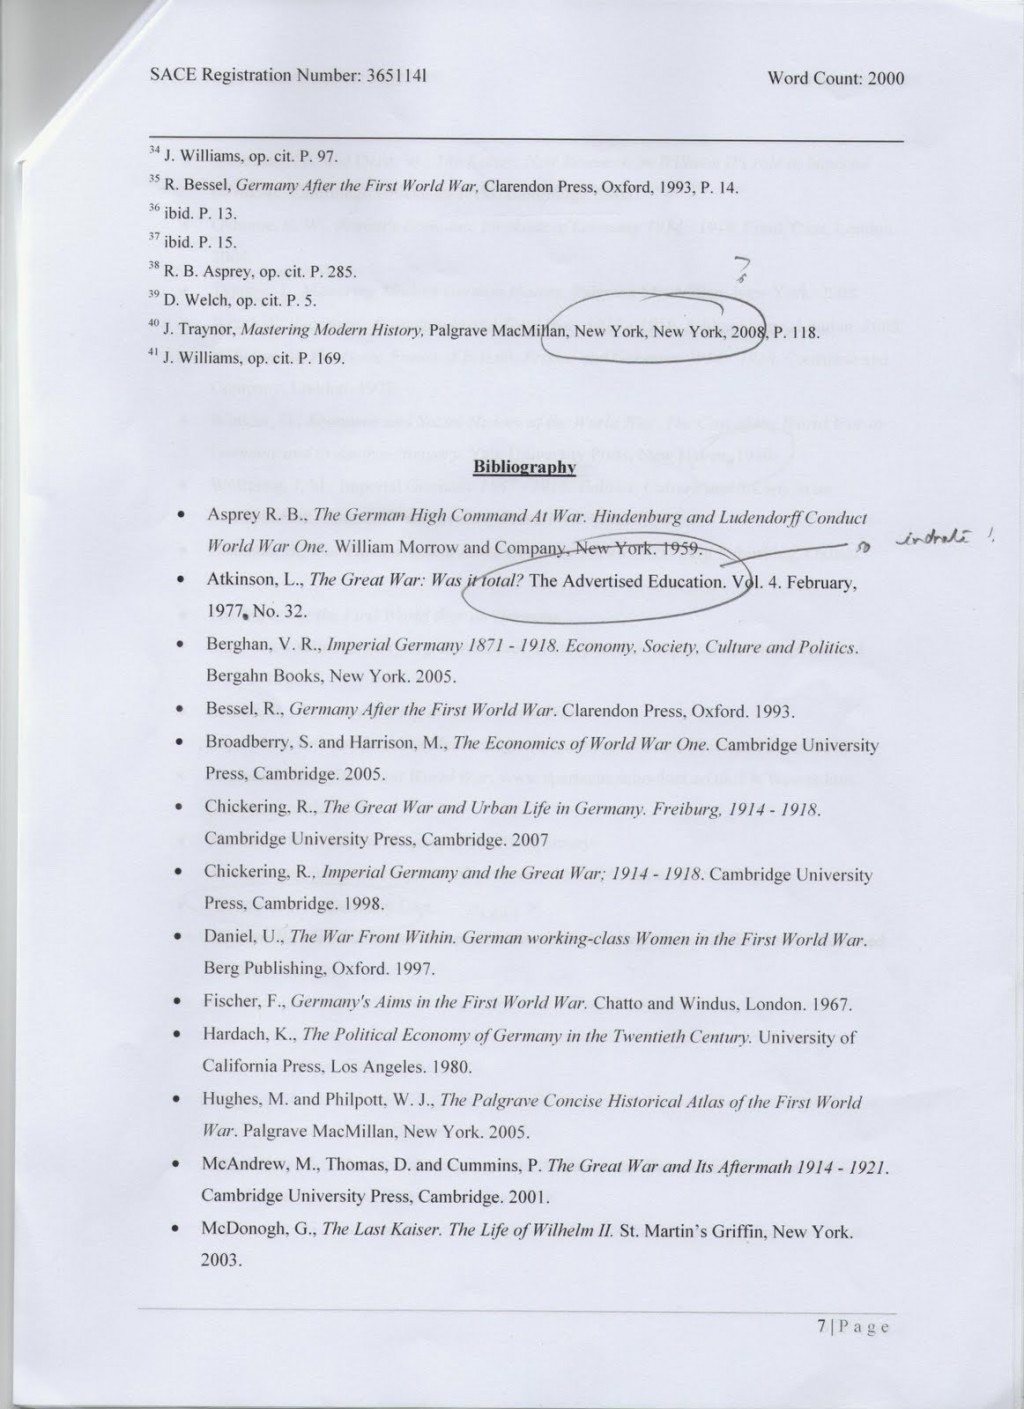 016 Endnotes2bbibliography1 Uchicago Essays Essay Astounding Law That Worked Length Reddit Large